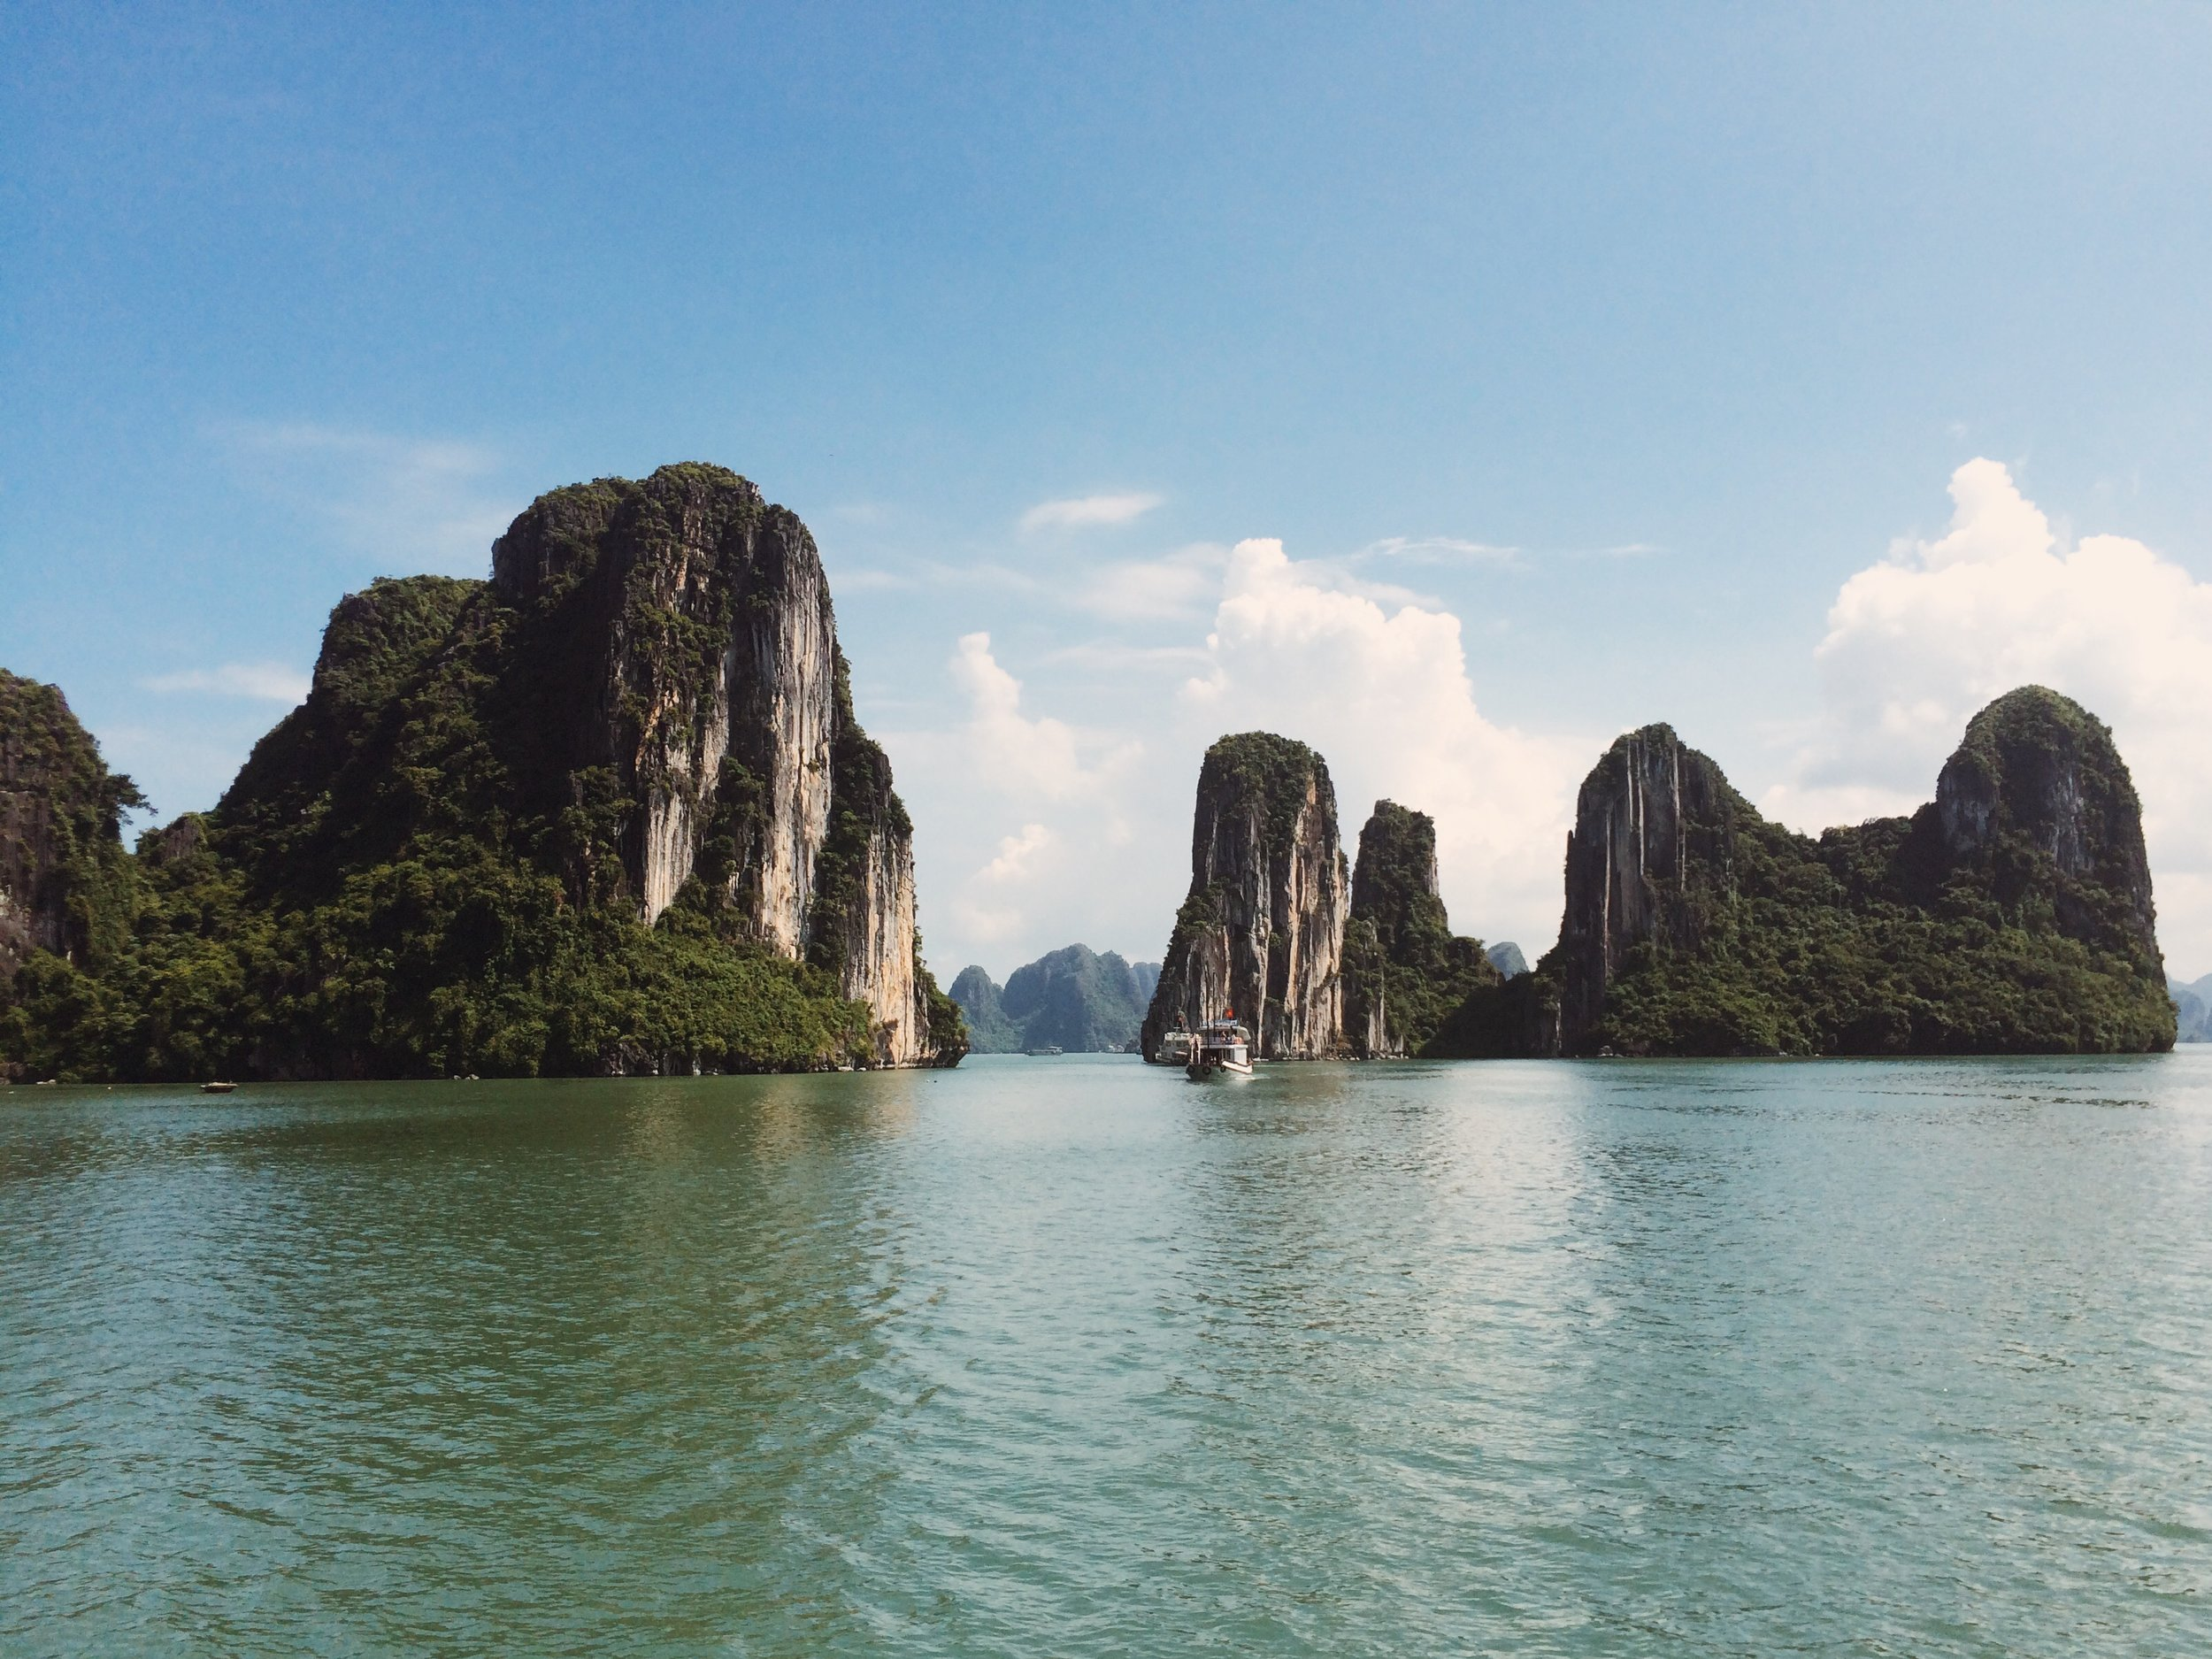 In 2012, New 7 Wonders Foundation officially named Halong Bay as one of New 7 Natural Wonders of the World. It is also a member of the Club of the Most Beautiful Bays of the World.